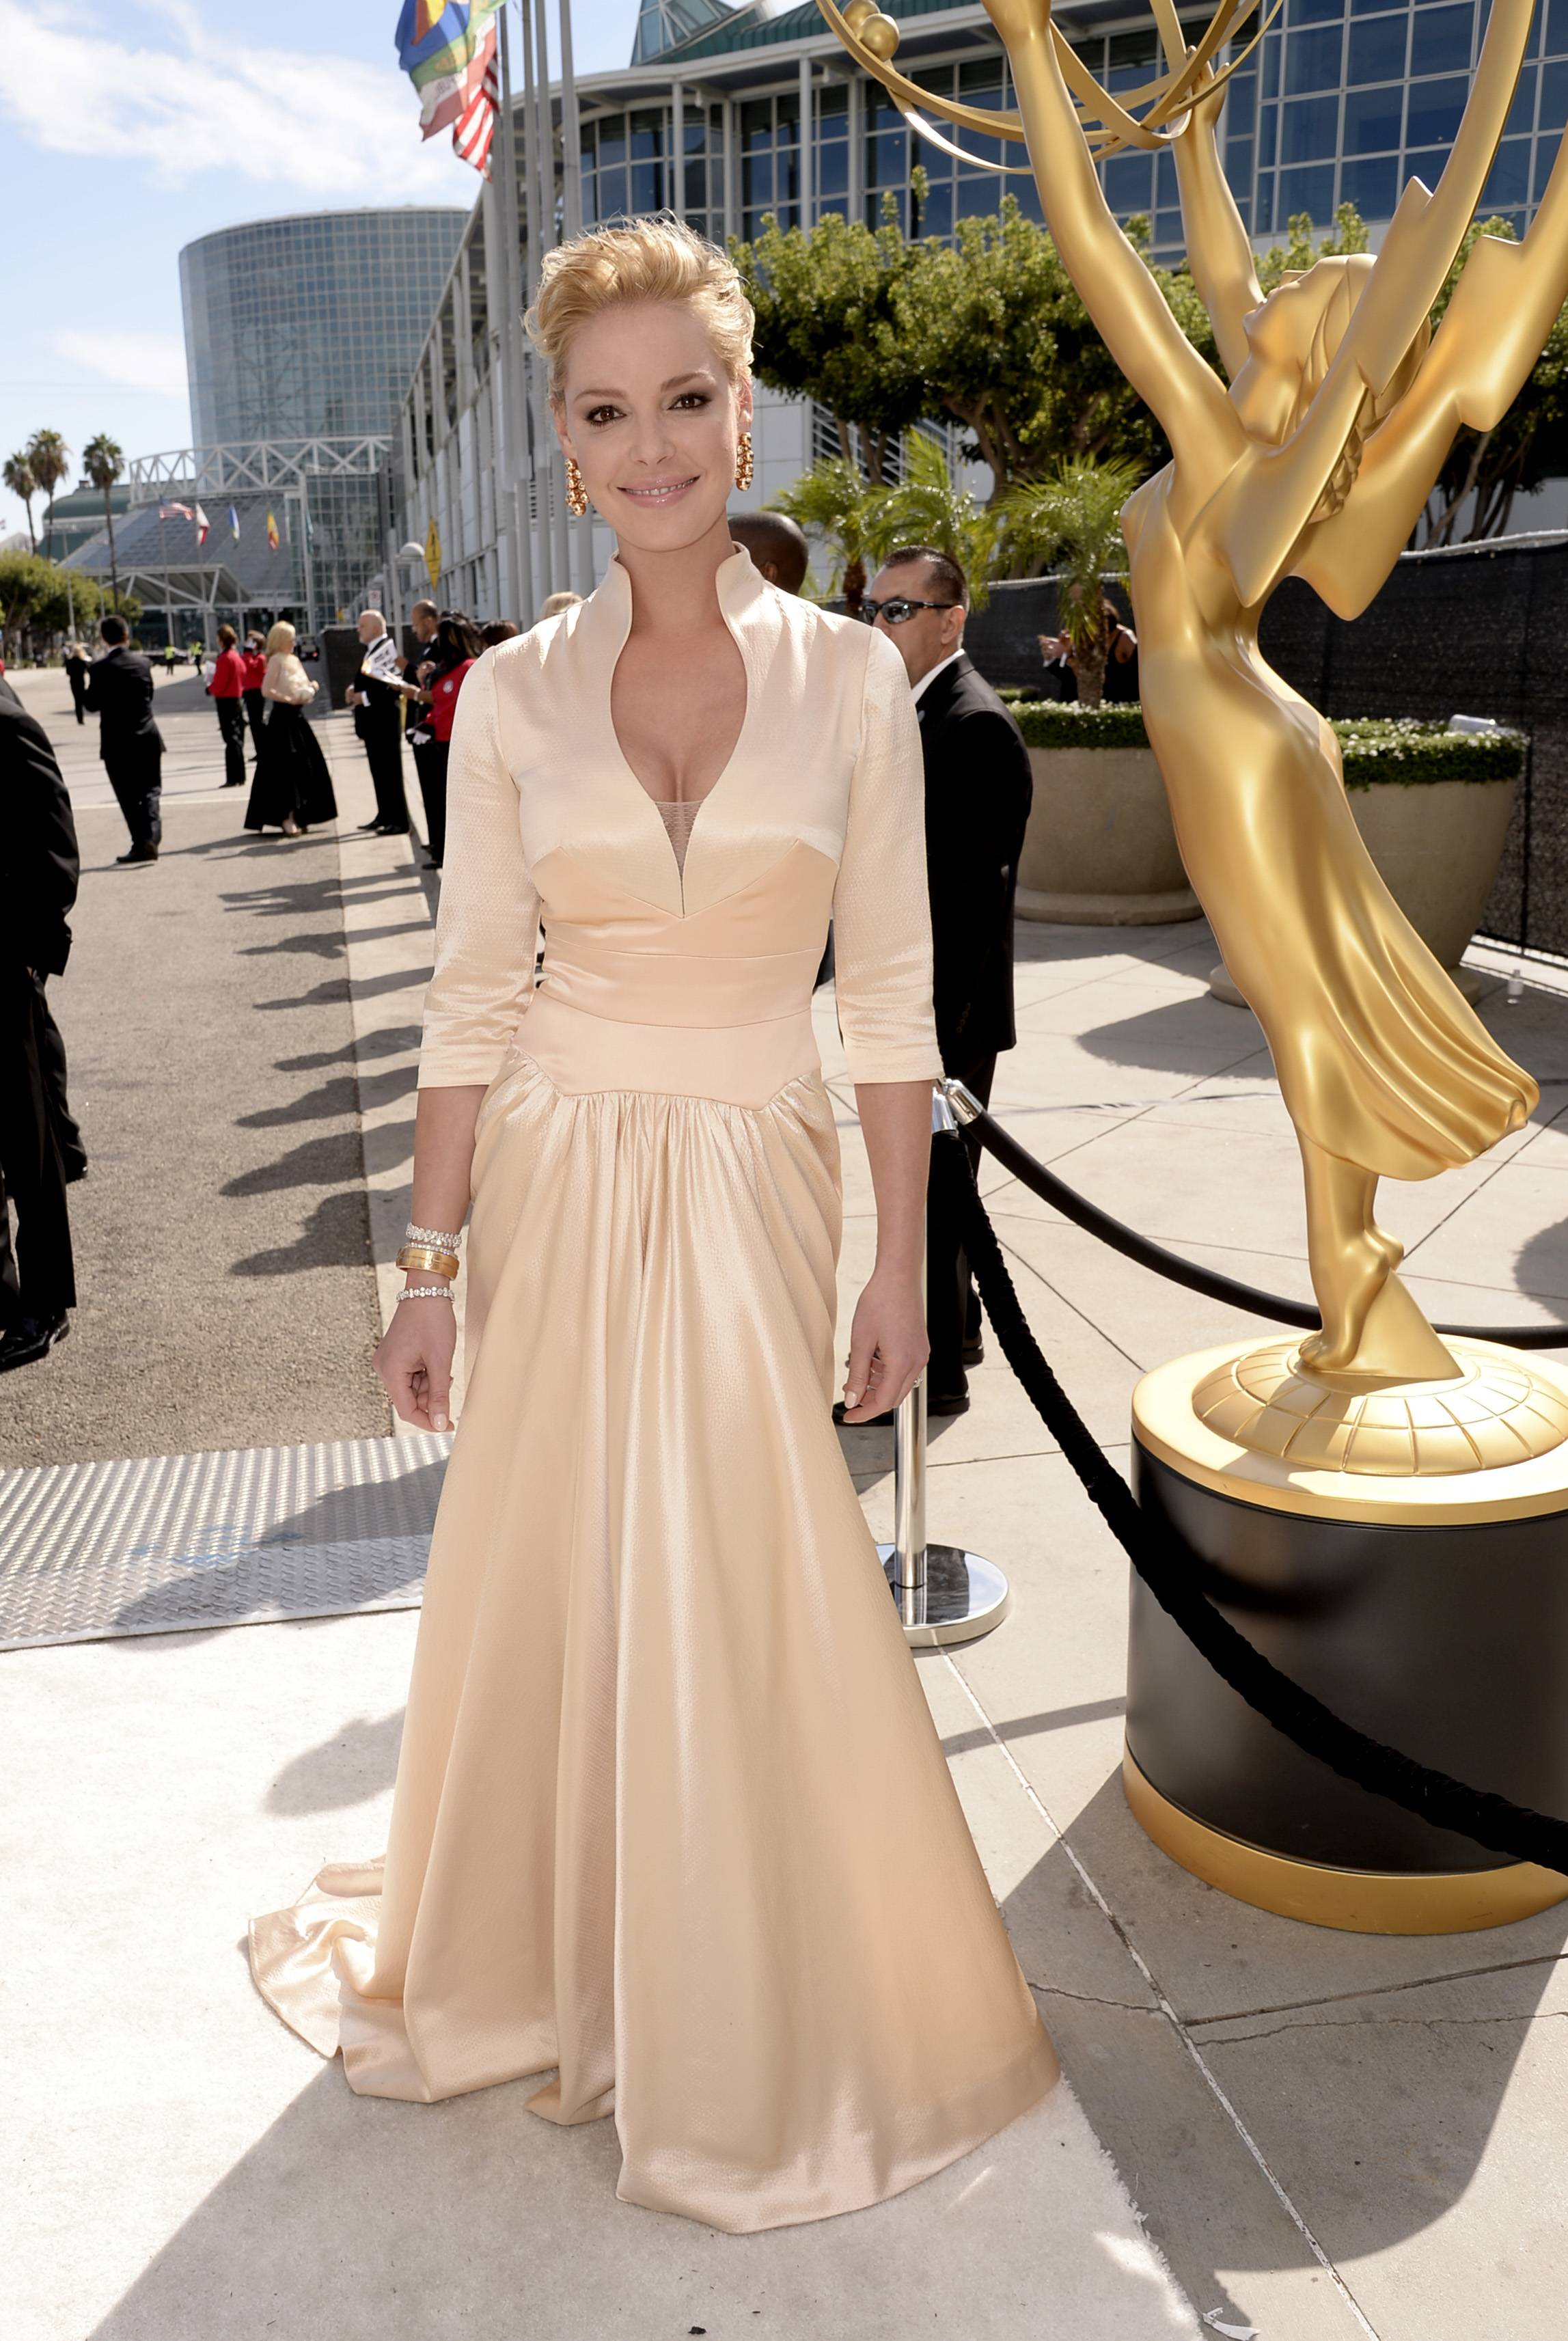 Katherine Heigl arrives at the 66th Primetime Emmy Awards at the Nokia Theatre.